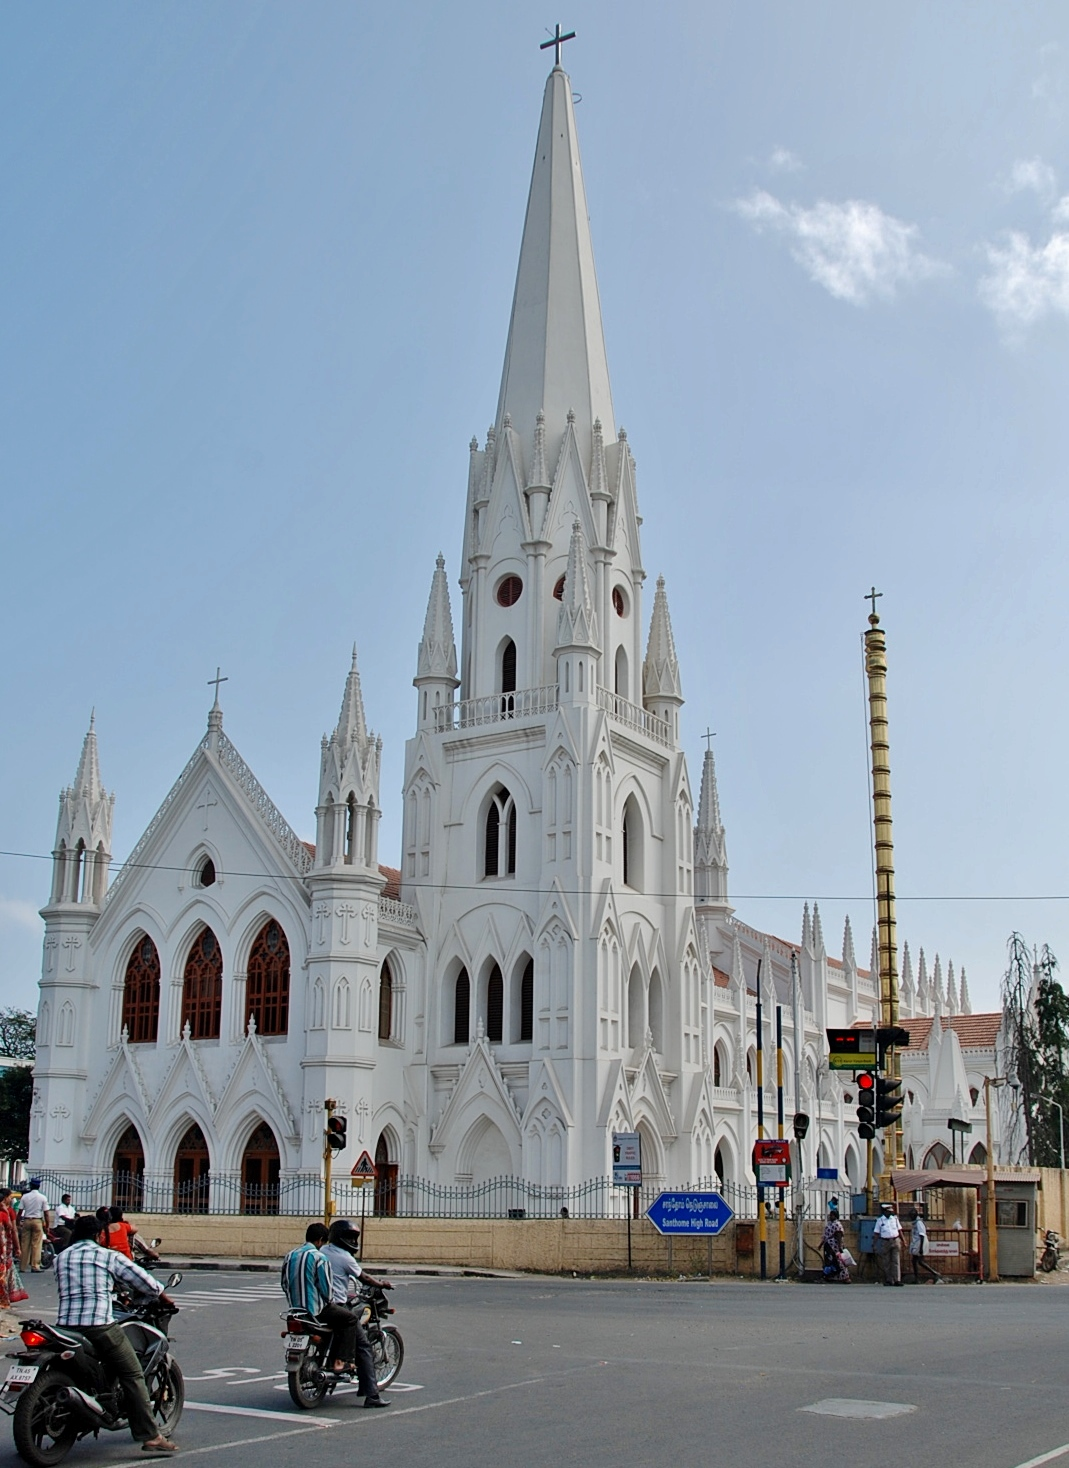 Chennai S. Thomas church